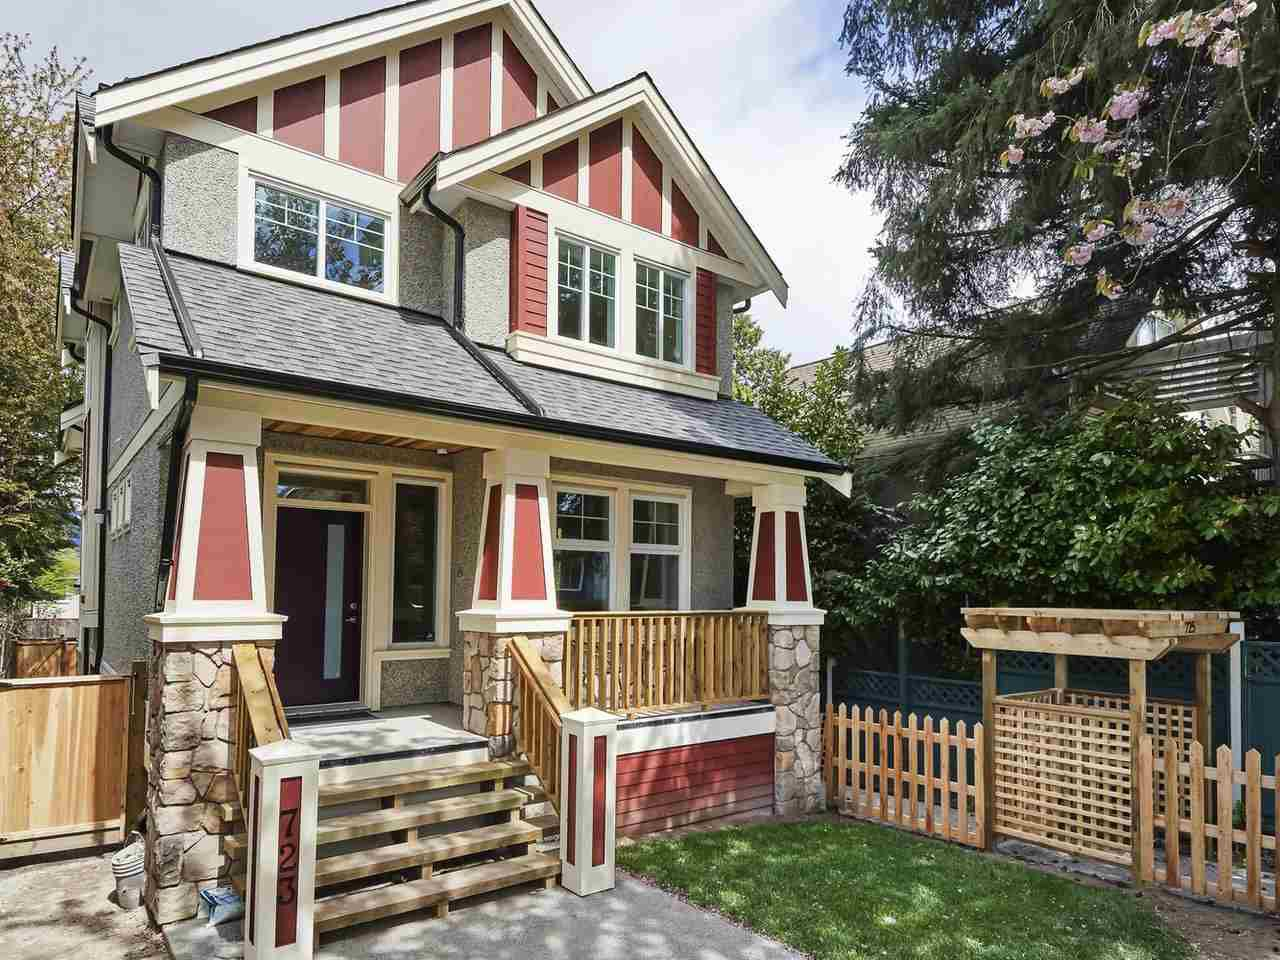 Main Photo: 723 E 13TH Avenue in Vancouver: Mount Pleasant VE House 1/2 Duplex for sale (Vancouver East)  : MLS®# R2365372